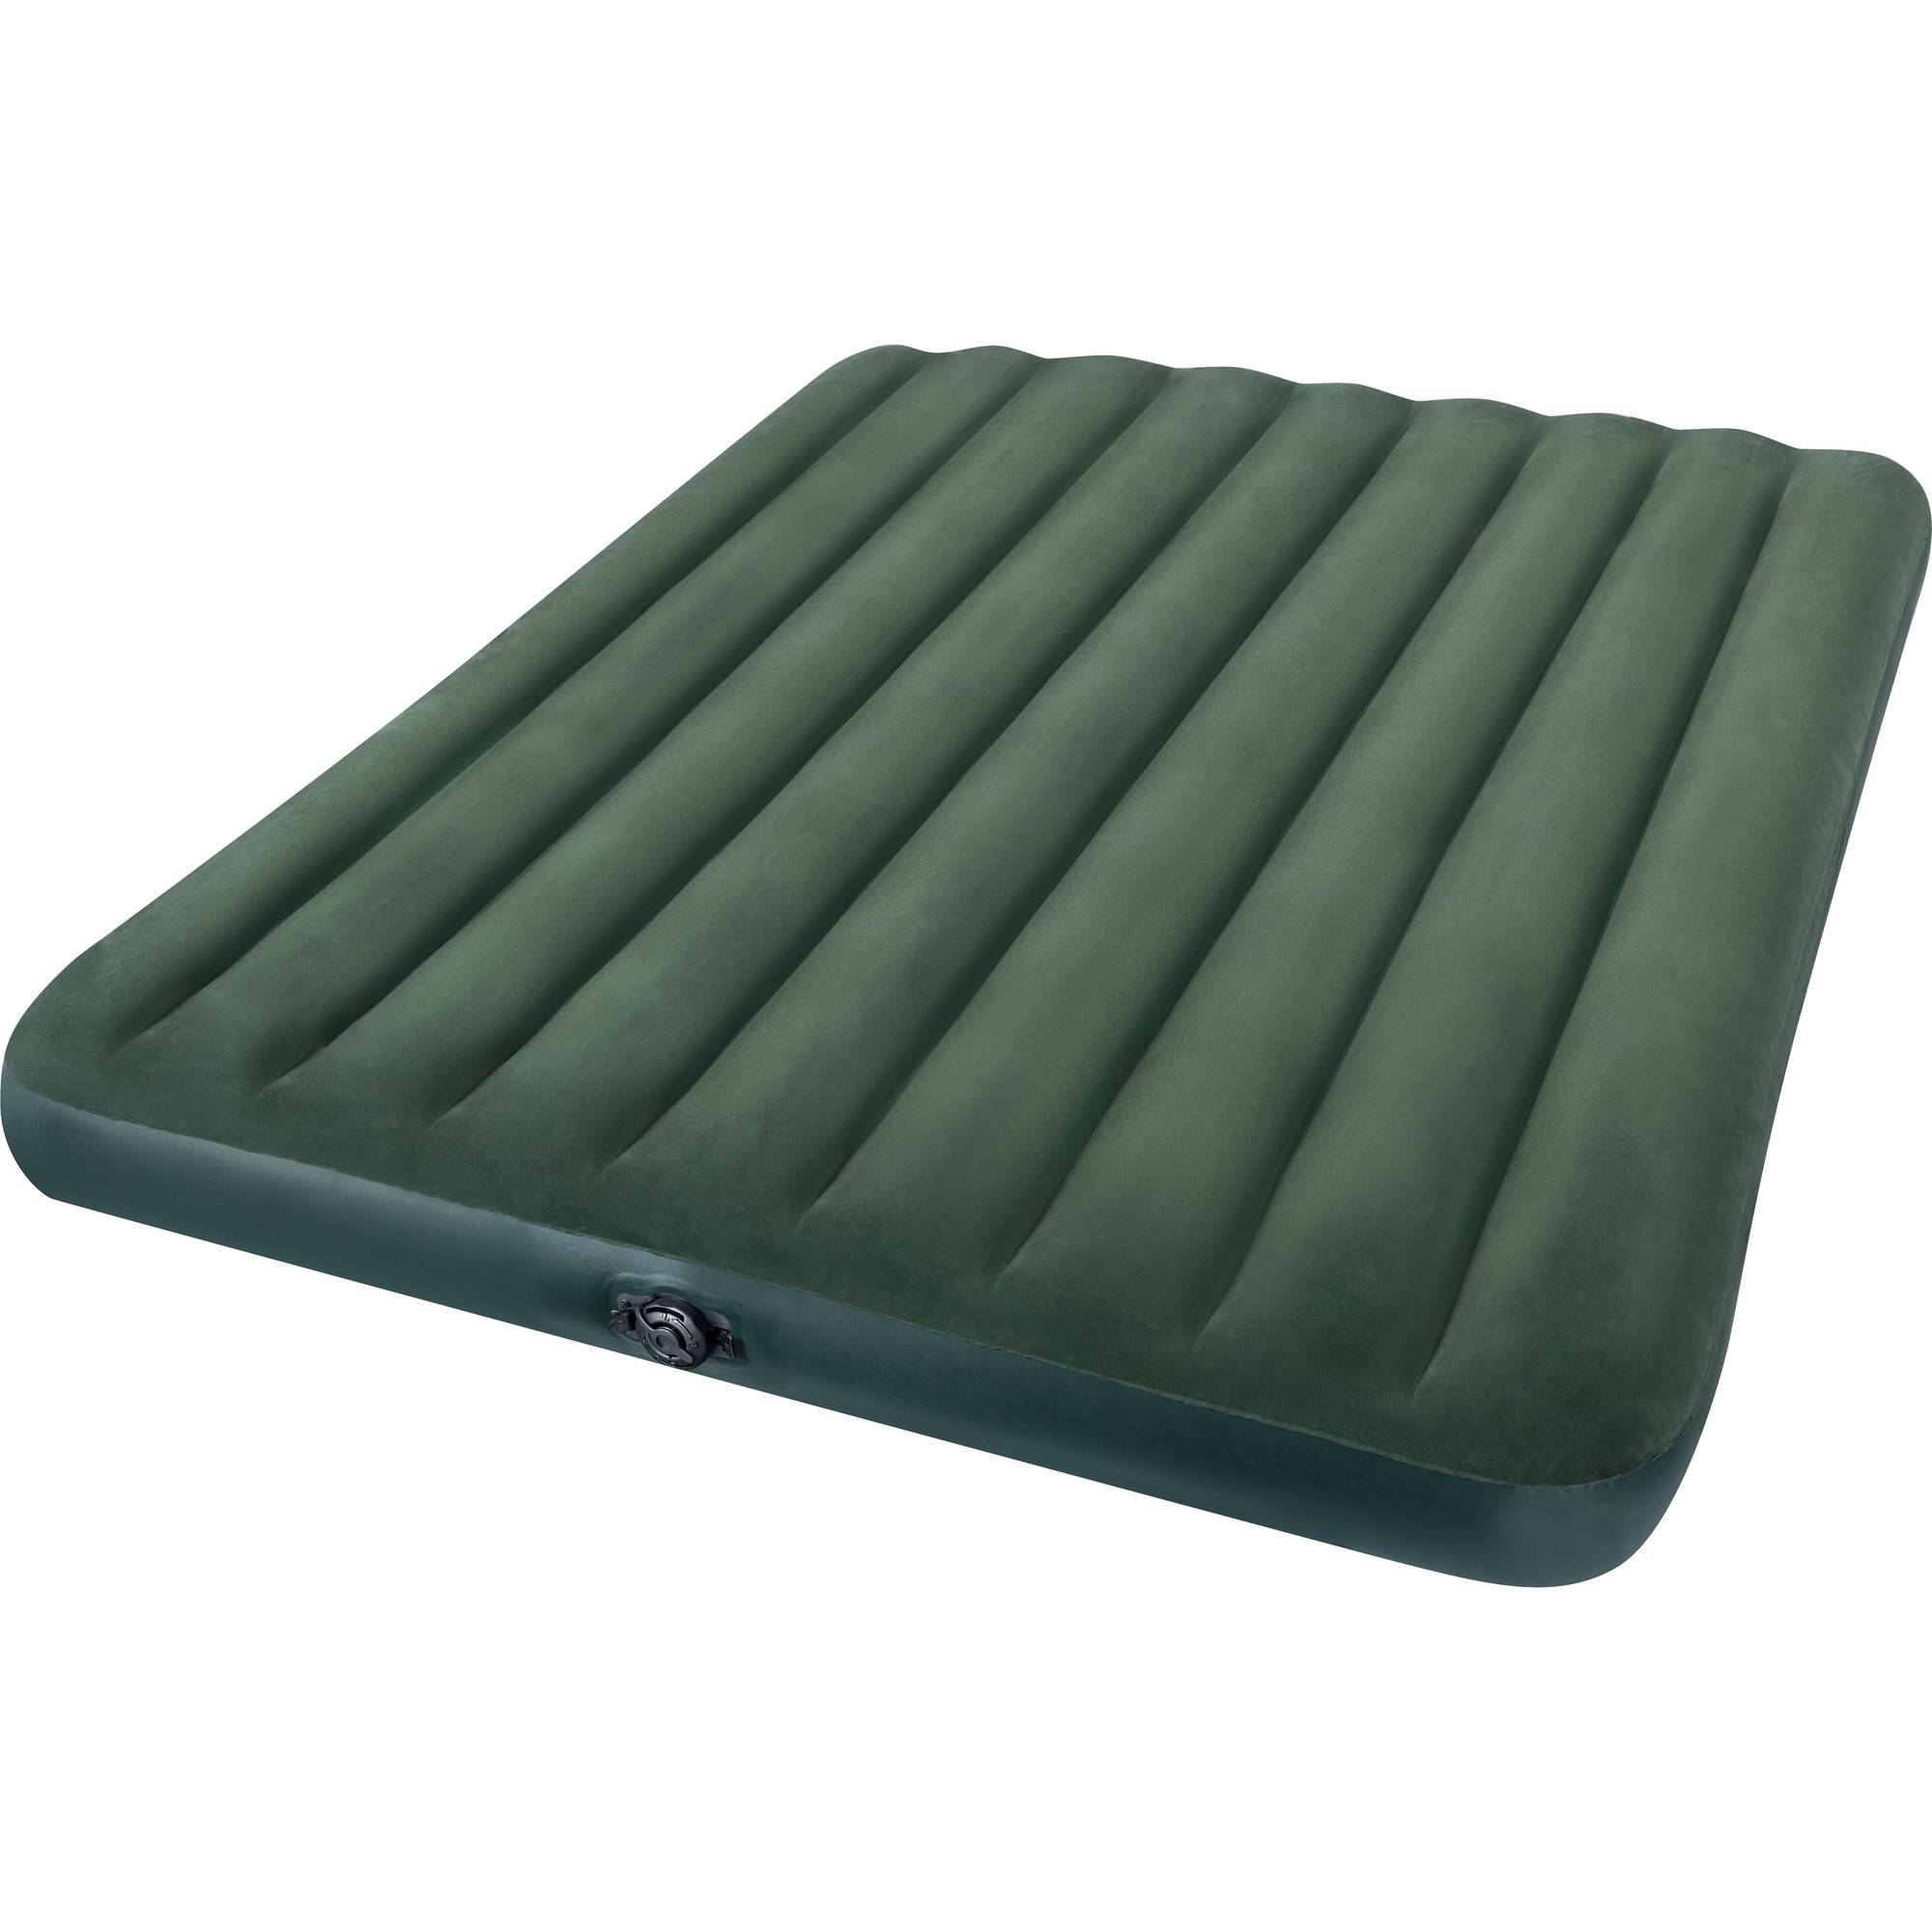 "Intex Queen 8.75"" Prestige Downy Airbed Mattress with Hand-Held Battery Pump"